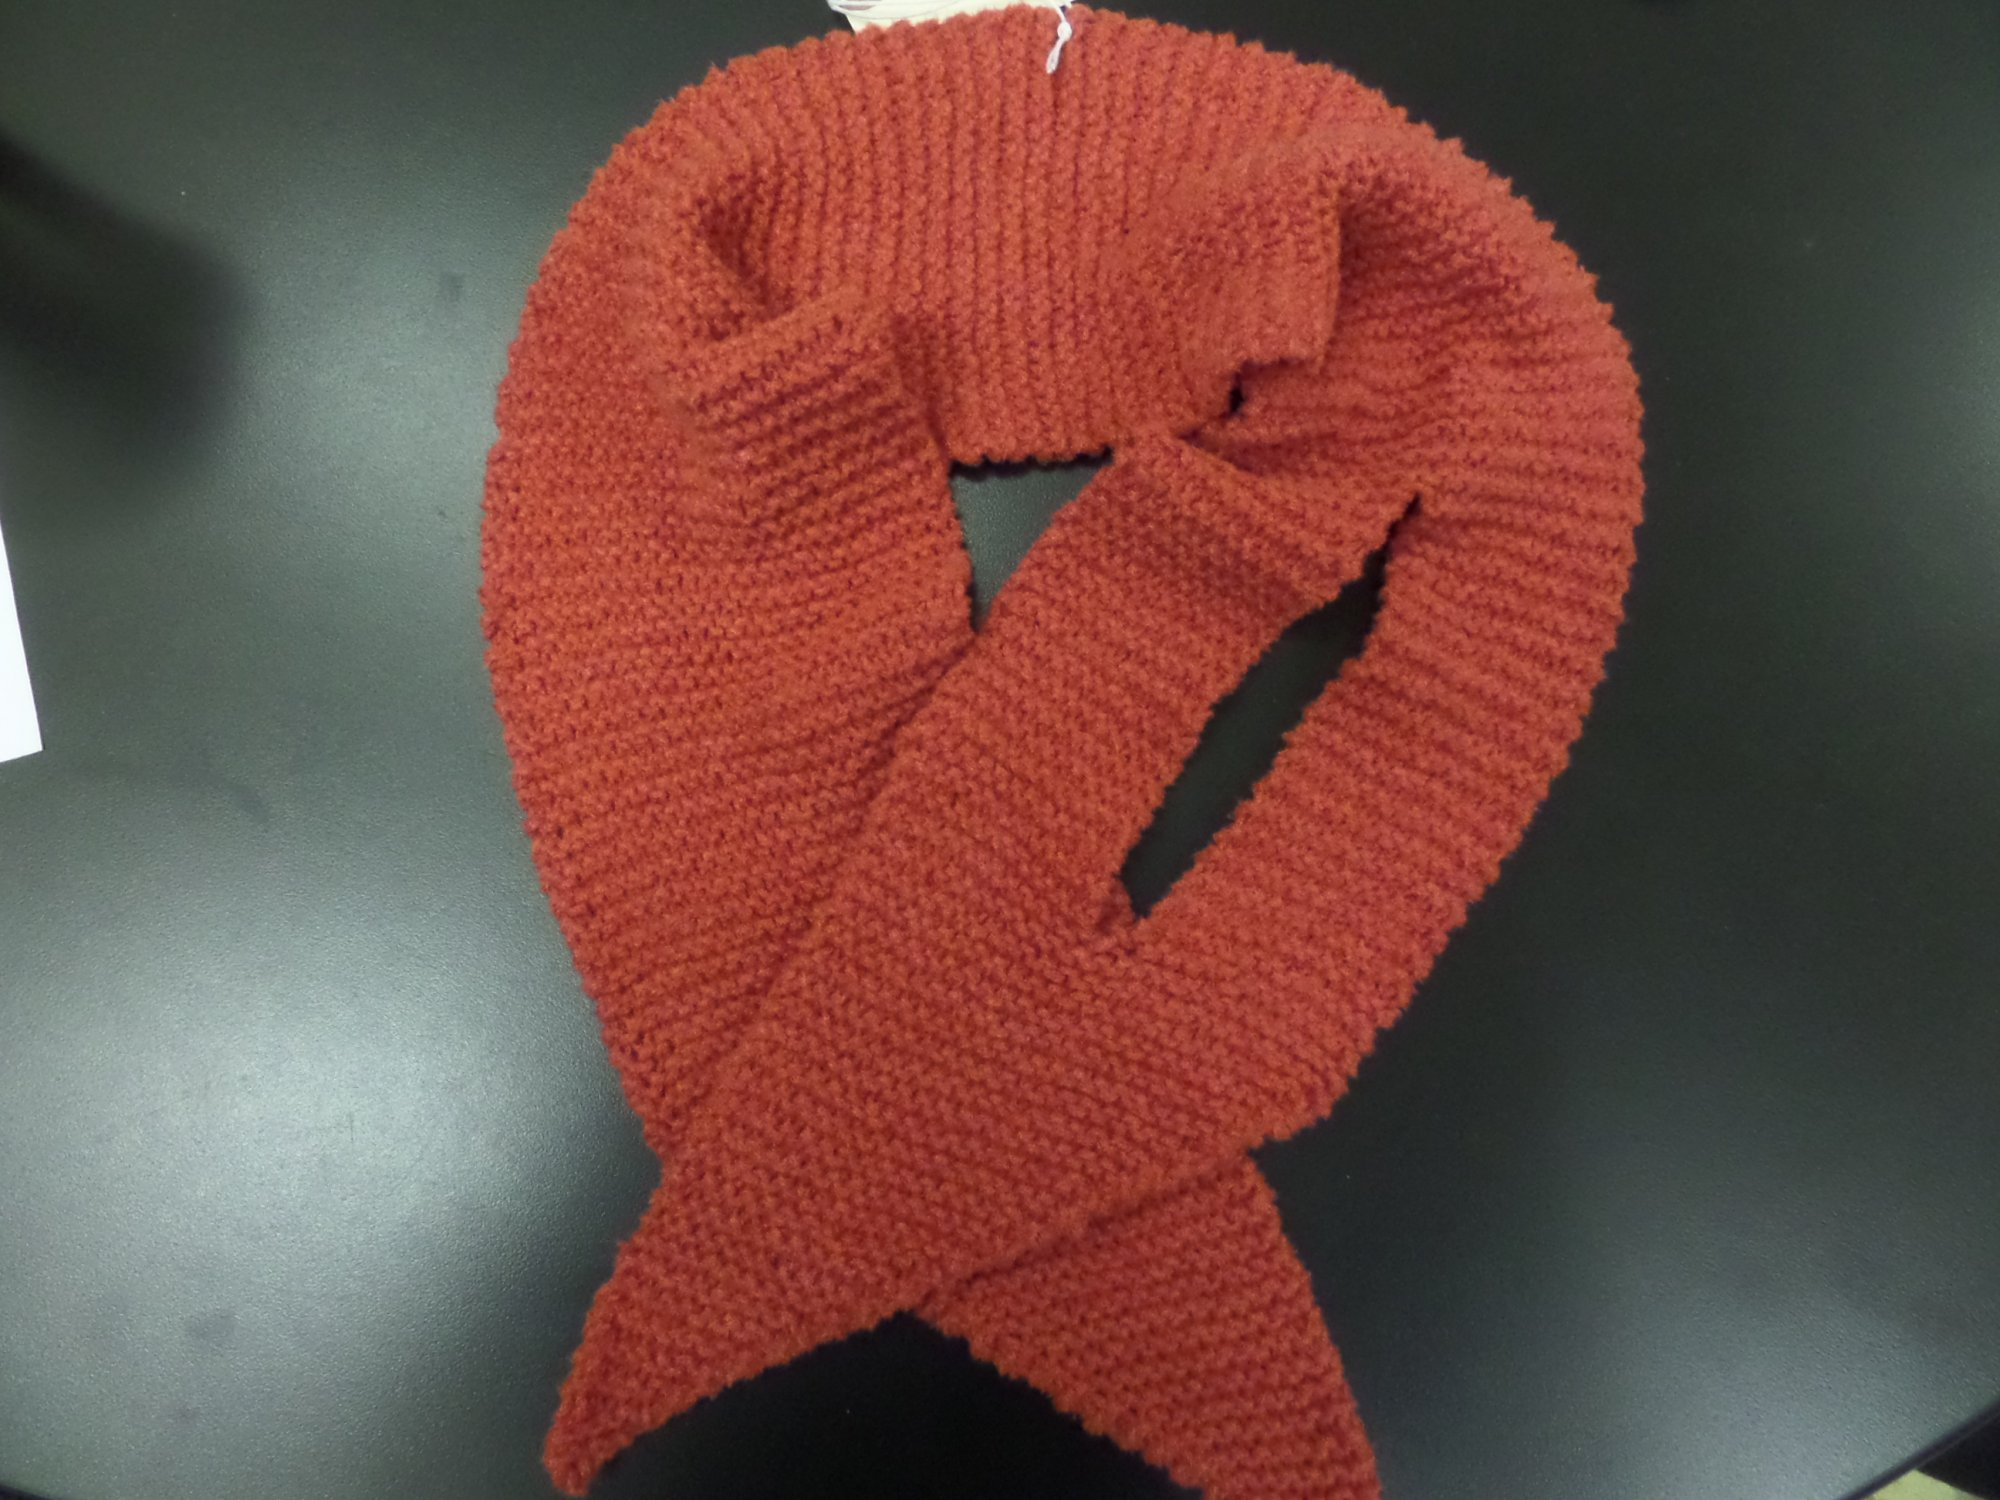 Keyhole scarf model in Velluto yarn from Lang